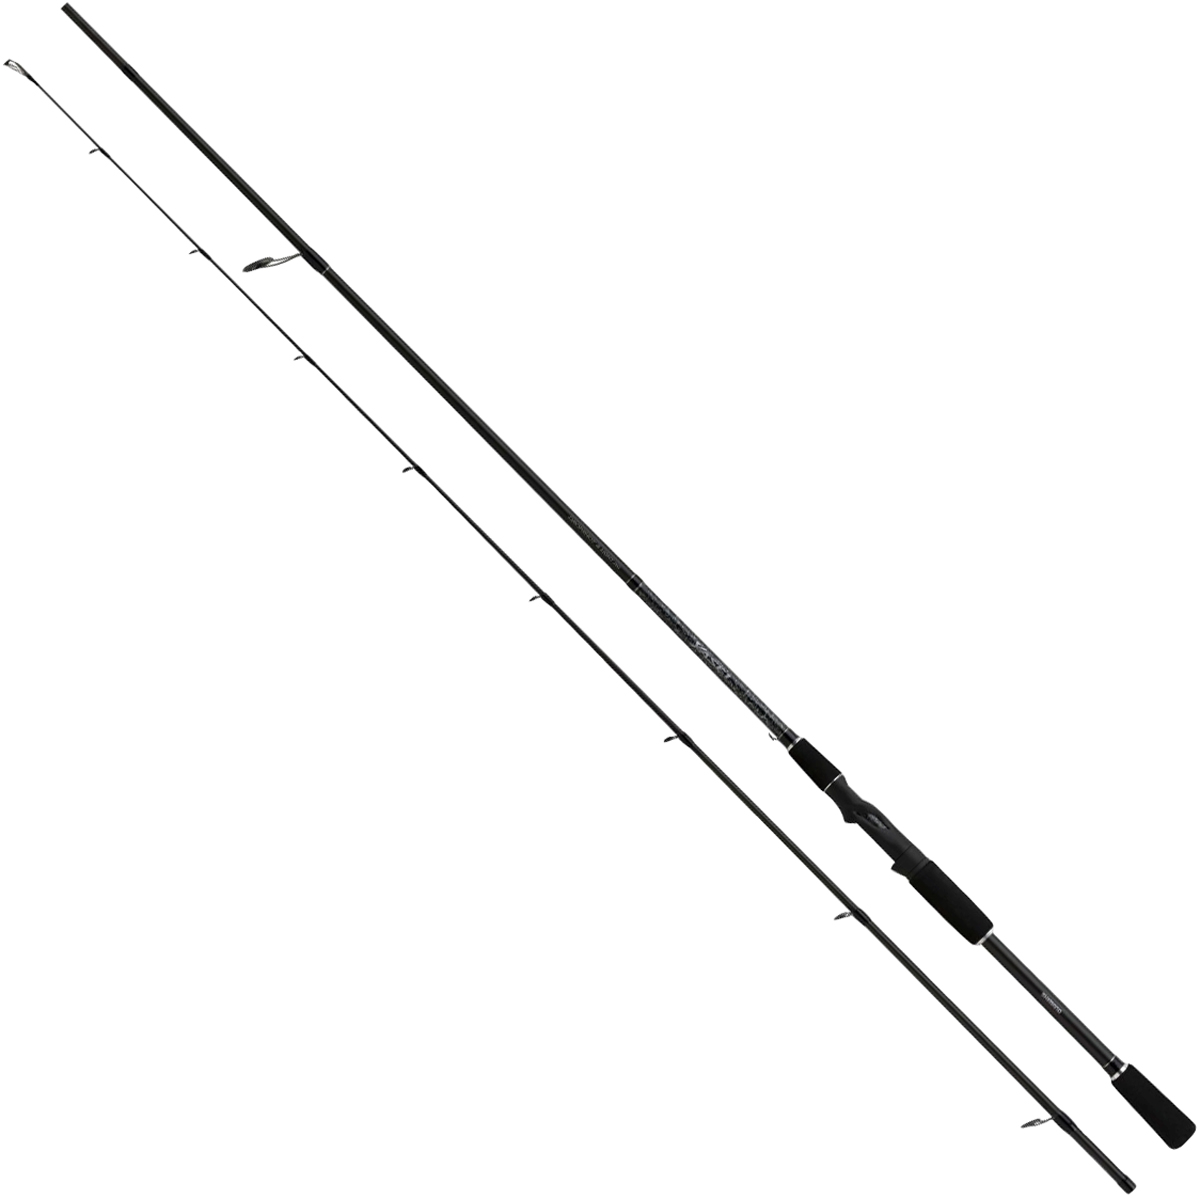 Спиннинг Shimano Yasei Dropshot Light Jig M 2.4m 7-21g (арт.22669796)